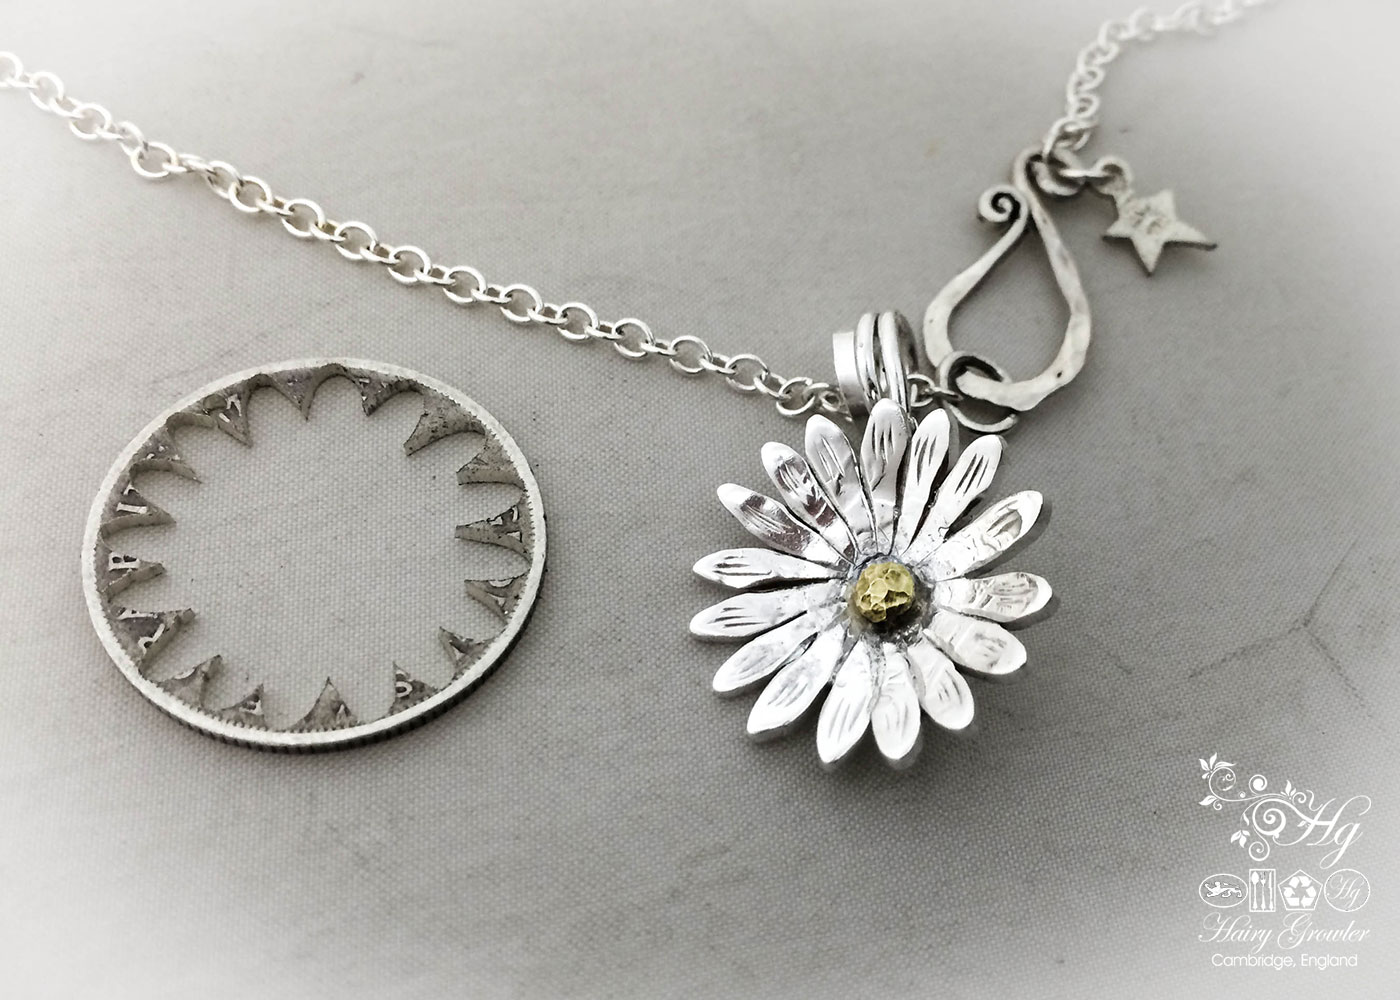 Handcrafted and recycled sterling silver shilling daisy necklace